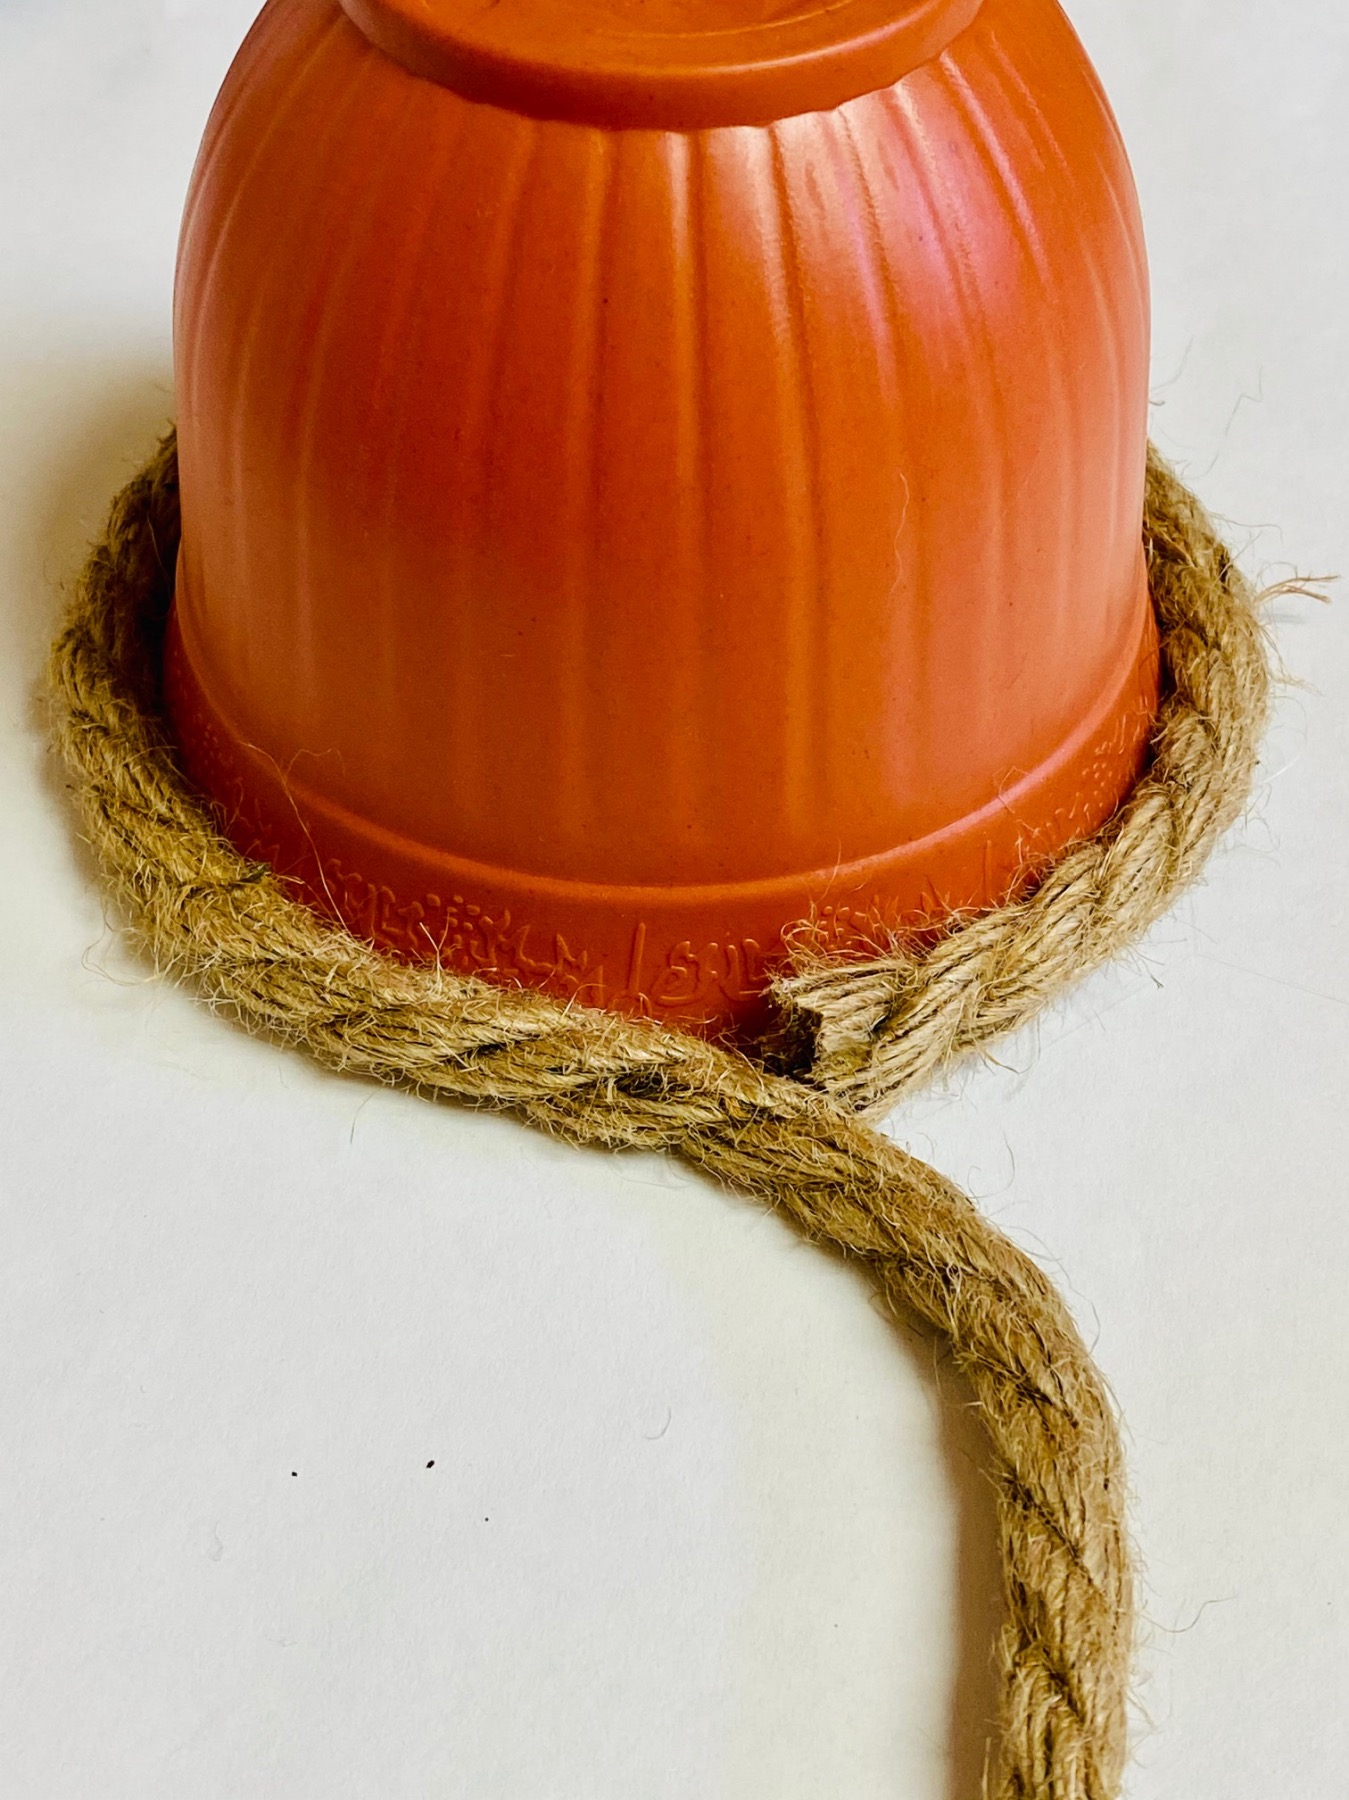 attach the rope at the base to make a beehive decoration